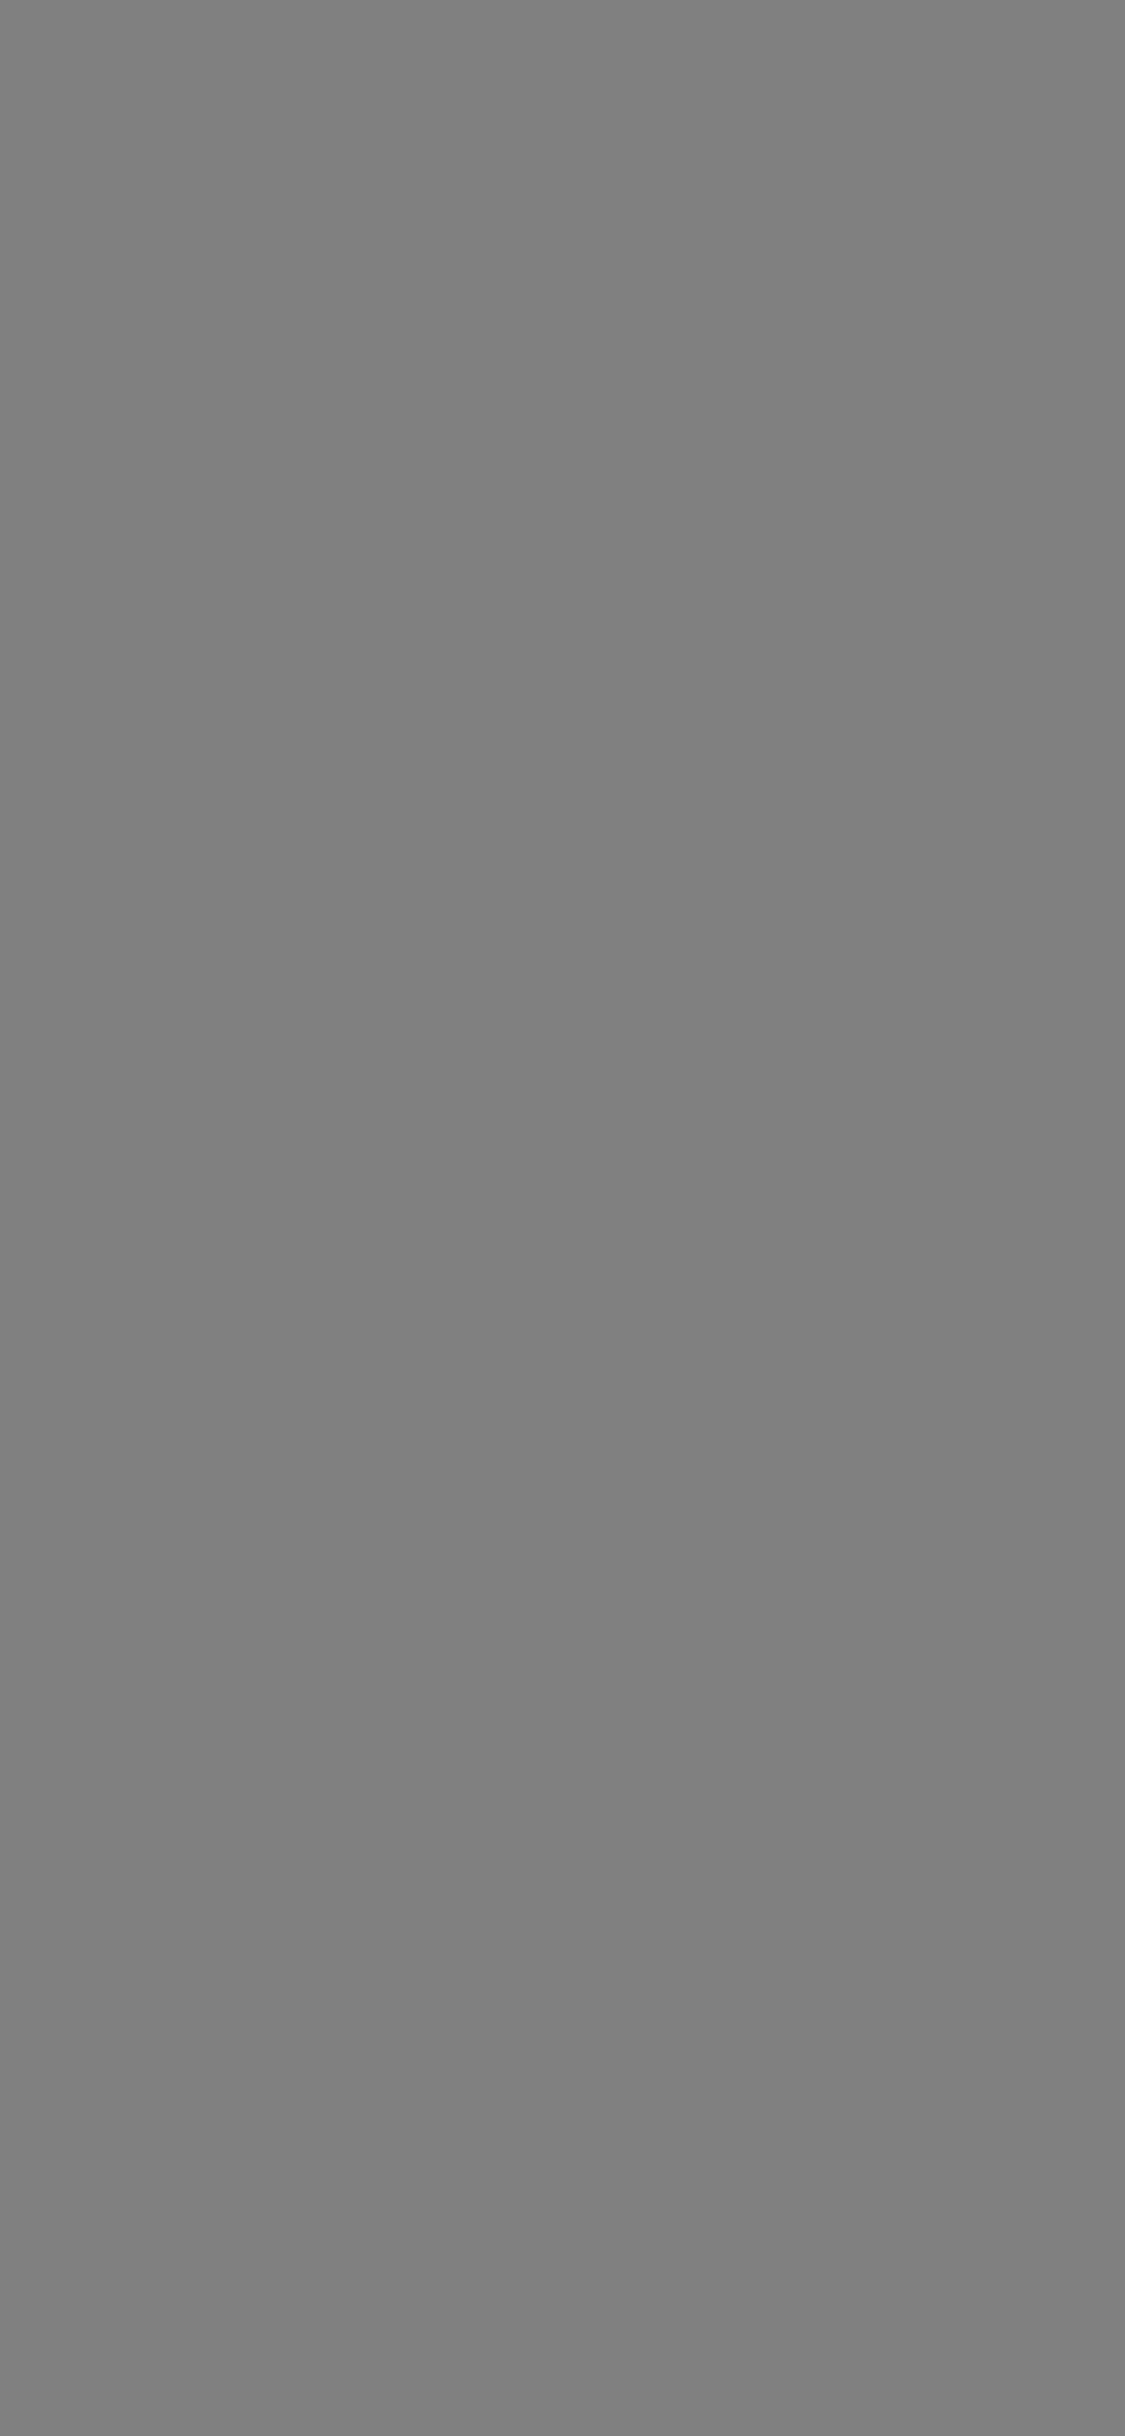 1125x2436 Trolley Grey Solid Color Background